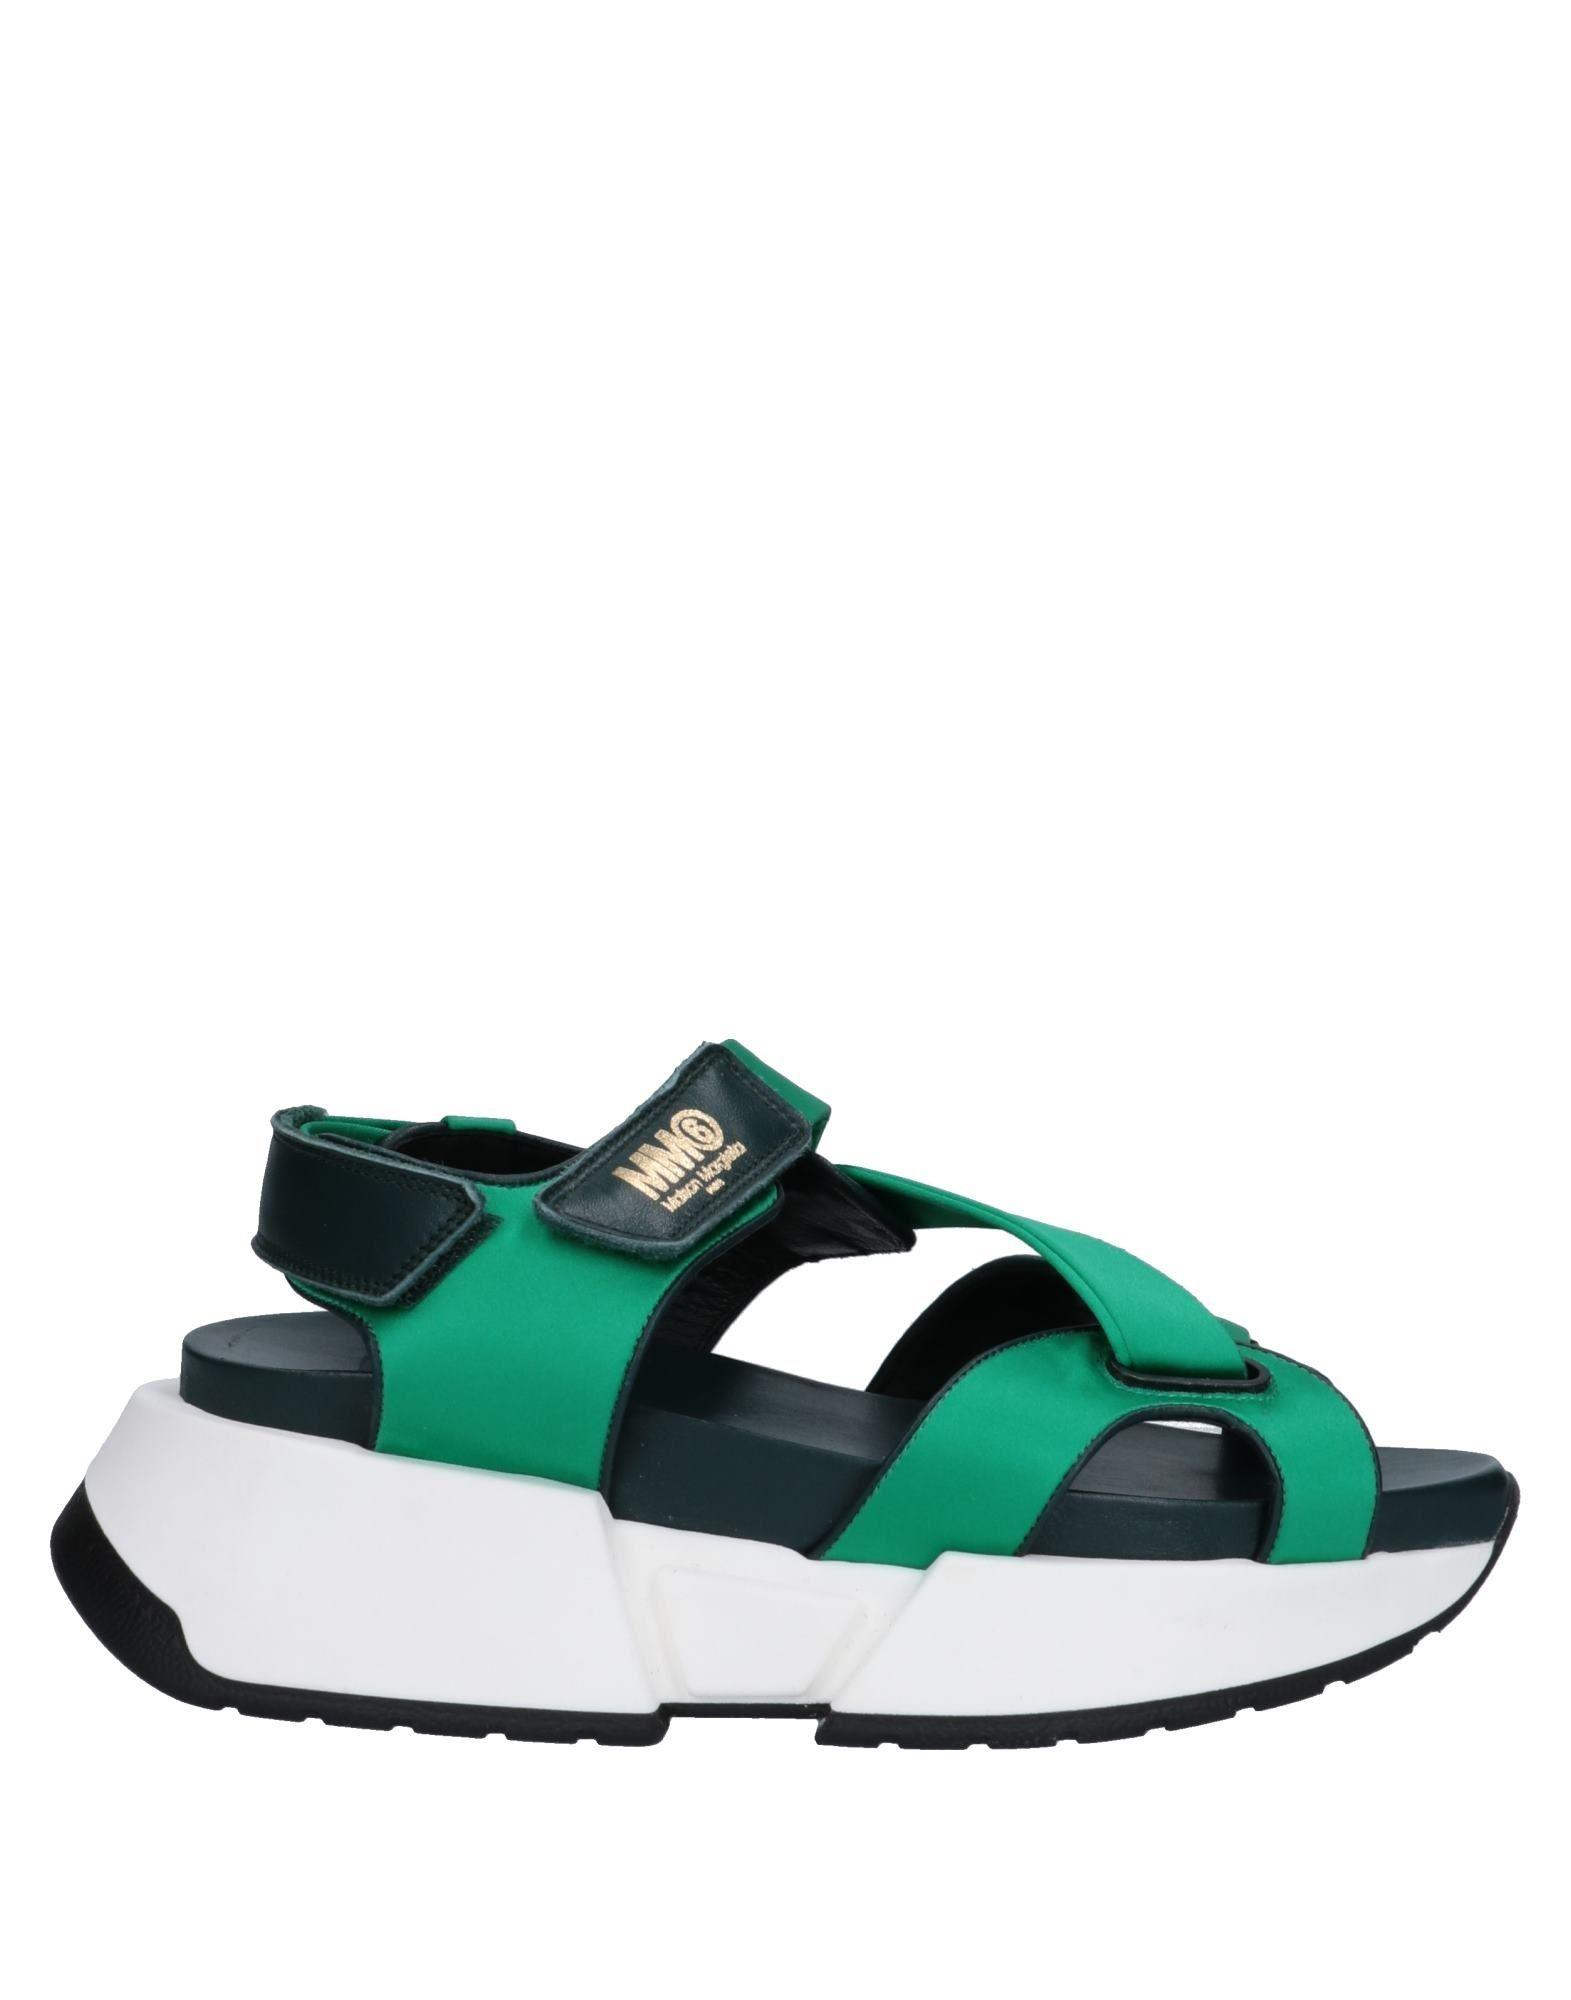 9dac5dcafb3e Lyst - MM6 by Maison Martin Margiela Sandals in Green